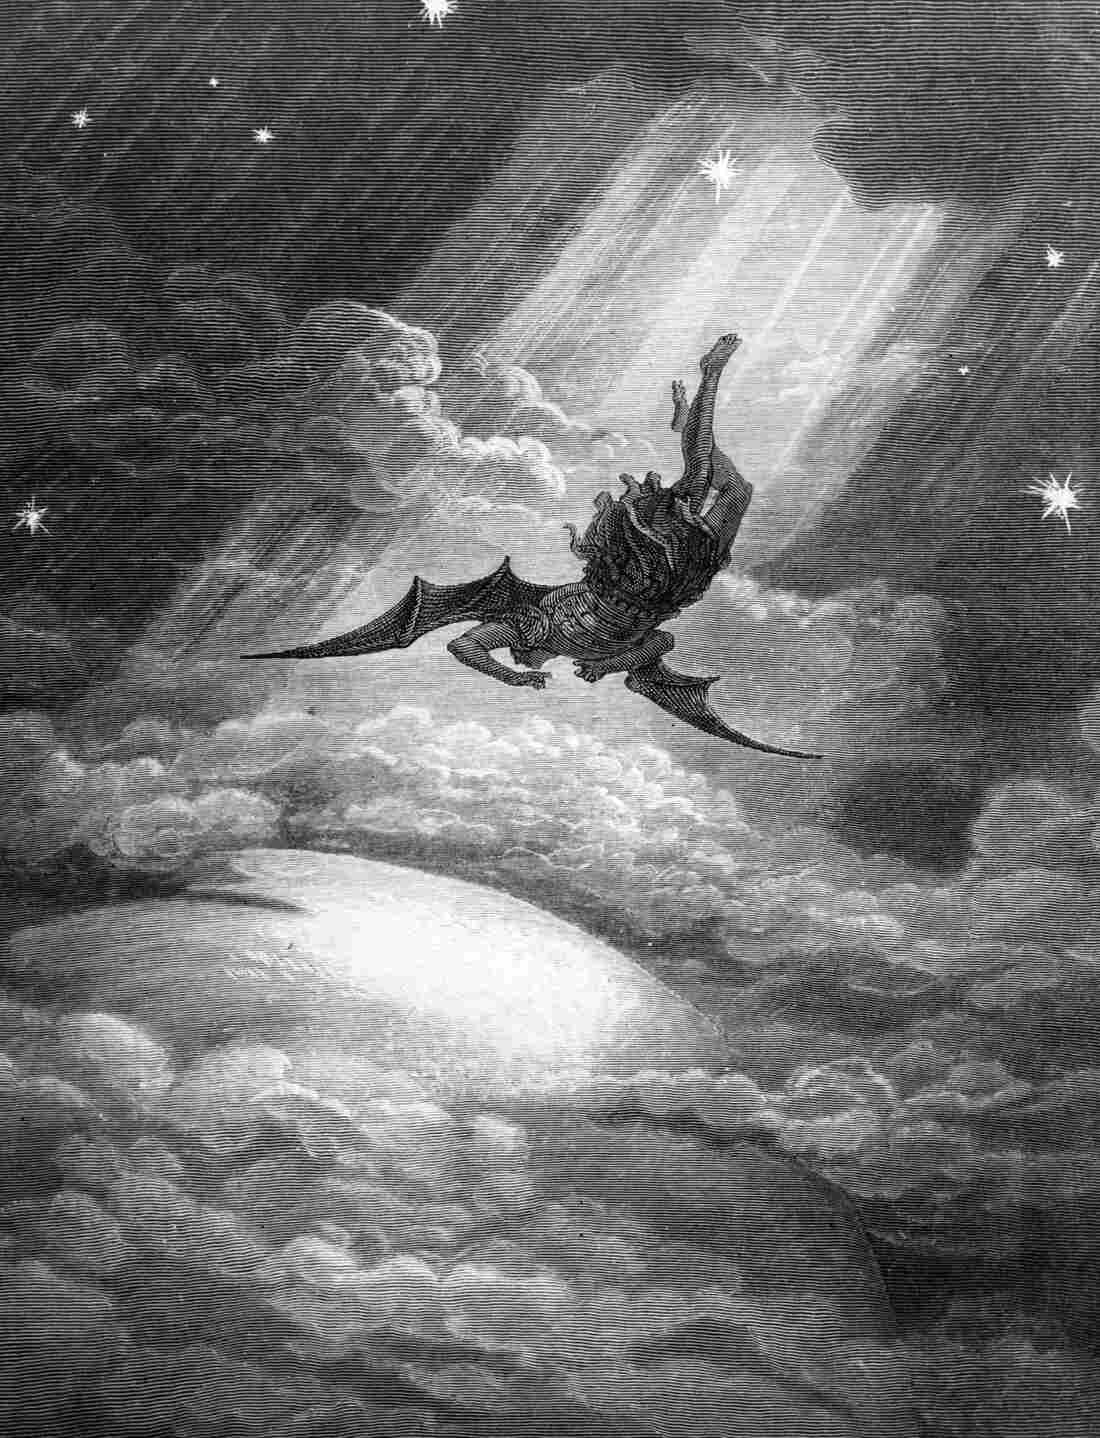 In this Gustave Dore engraving from Milton's Paradise Lost, Satan, the Fallen Angel, is flung from Heaven and nears the confines of the Earth on his way to Hell.